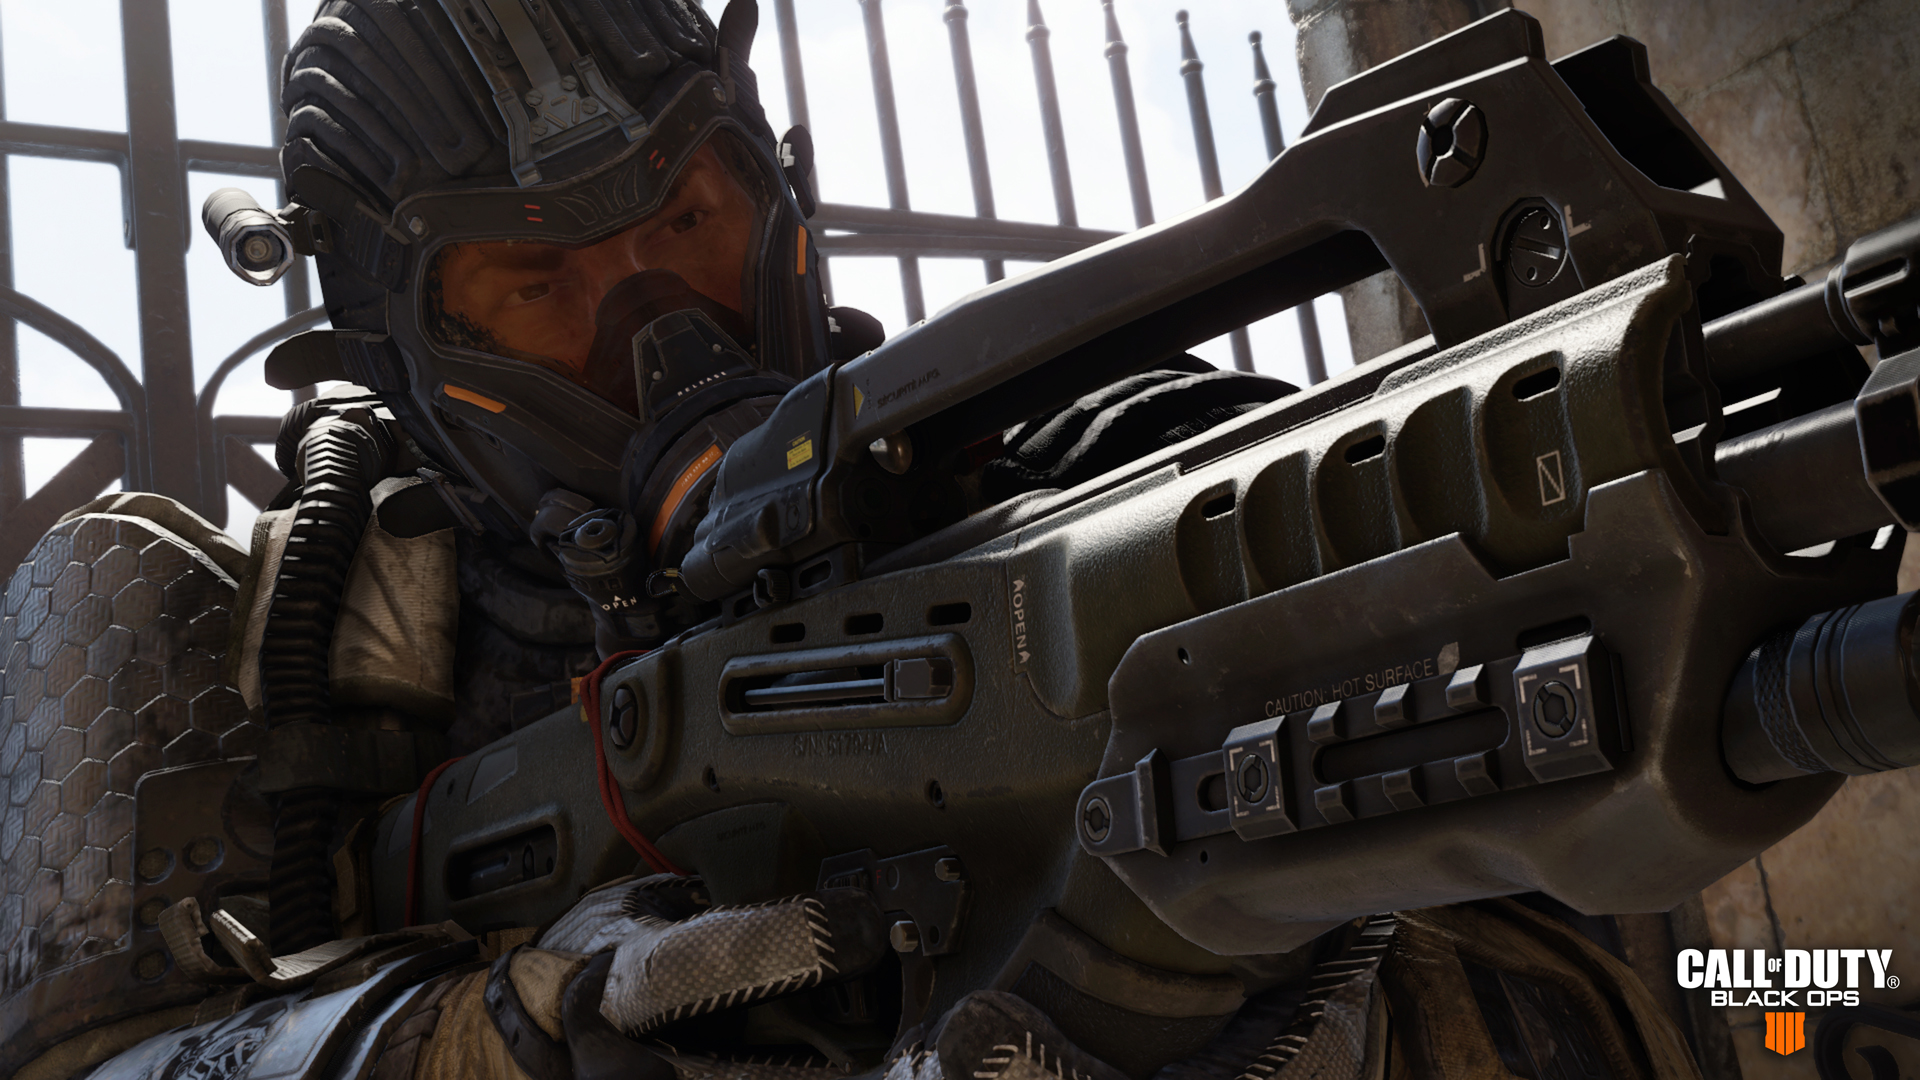 Call of Duty Black Ops 4 Screenshots #10 - Bild: Activision